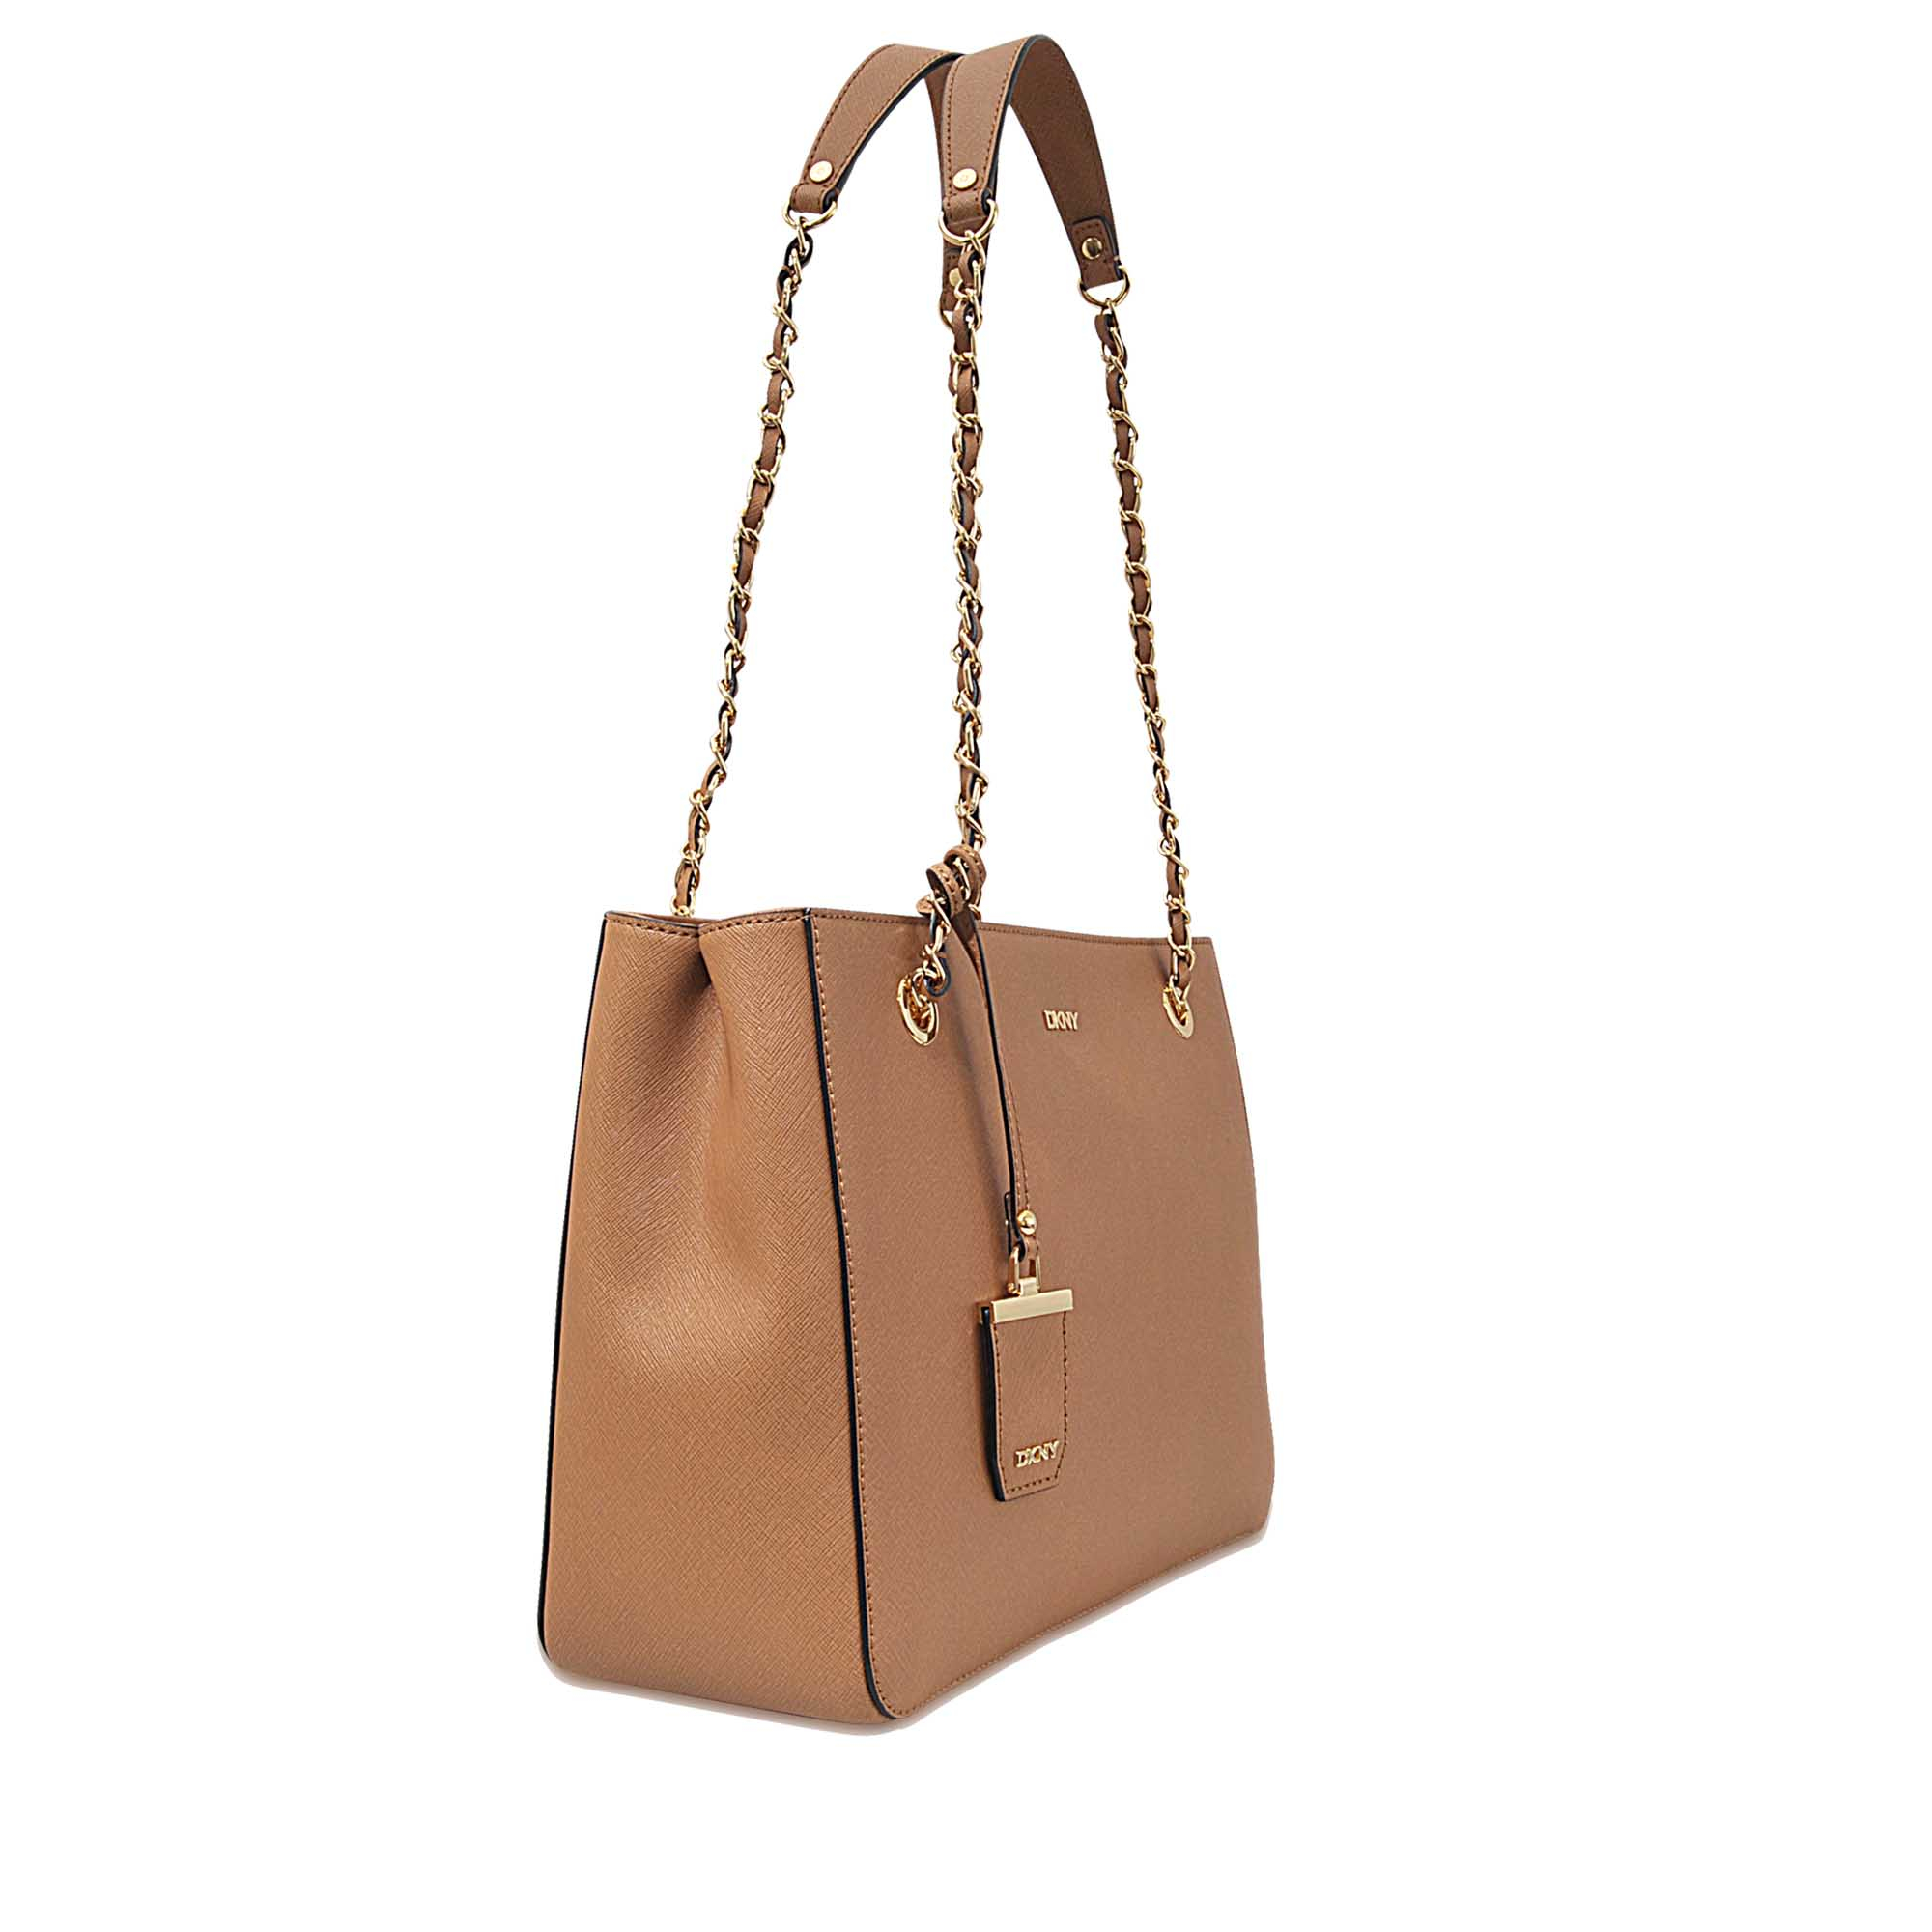 a4aba2df24 DKNY Bryant Park Shopper Bag in Brown - Lyst